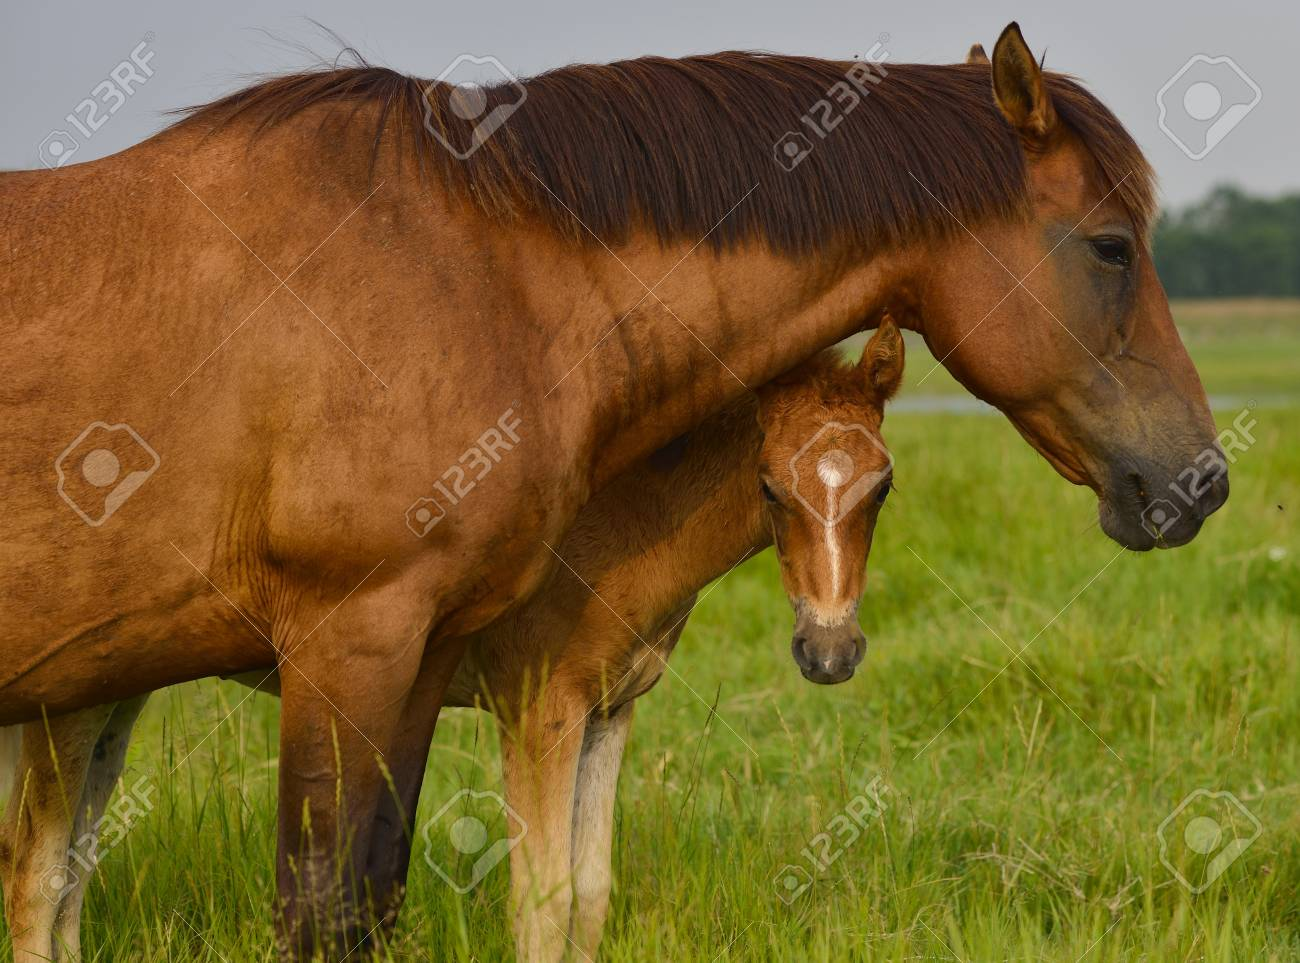 Mother Horse And Her Baby Colt Stock Photo Picture And Royalty Free Image Image 62862498